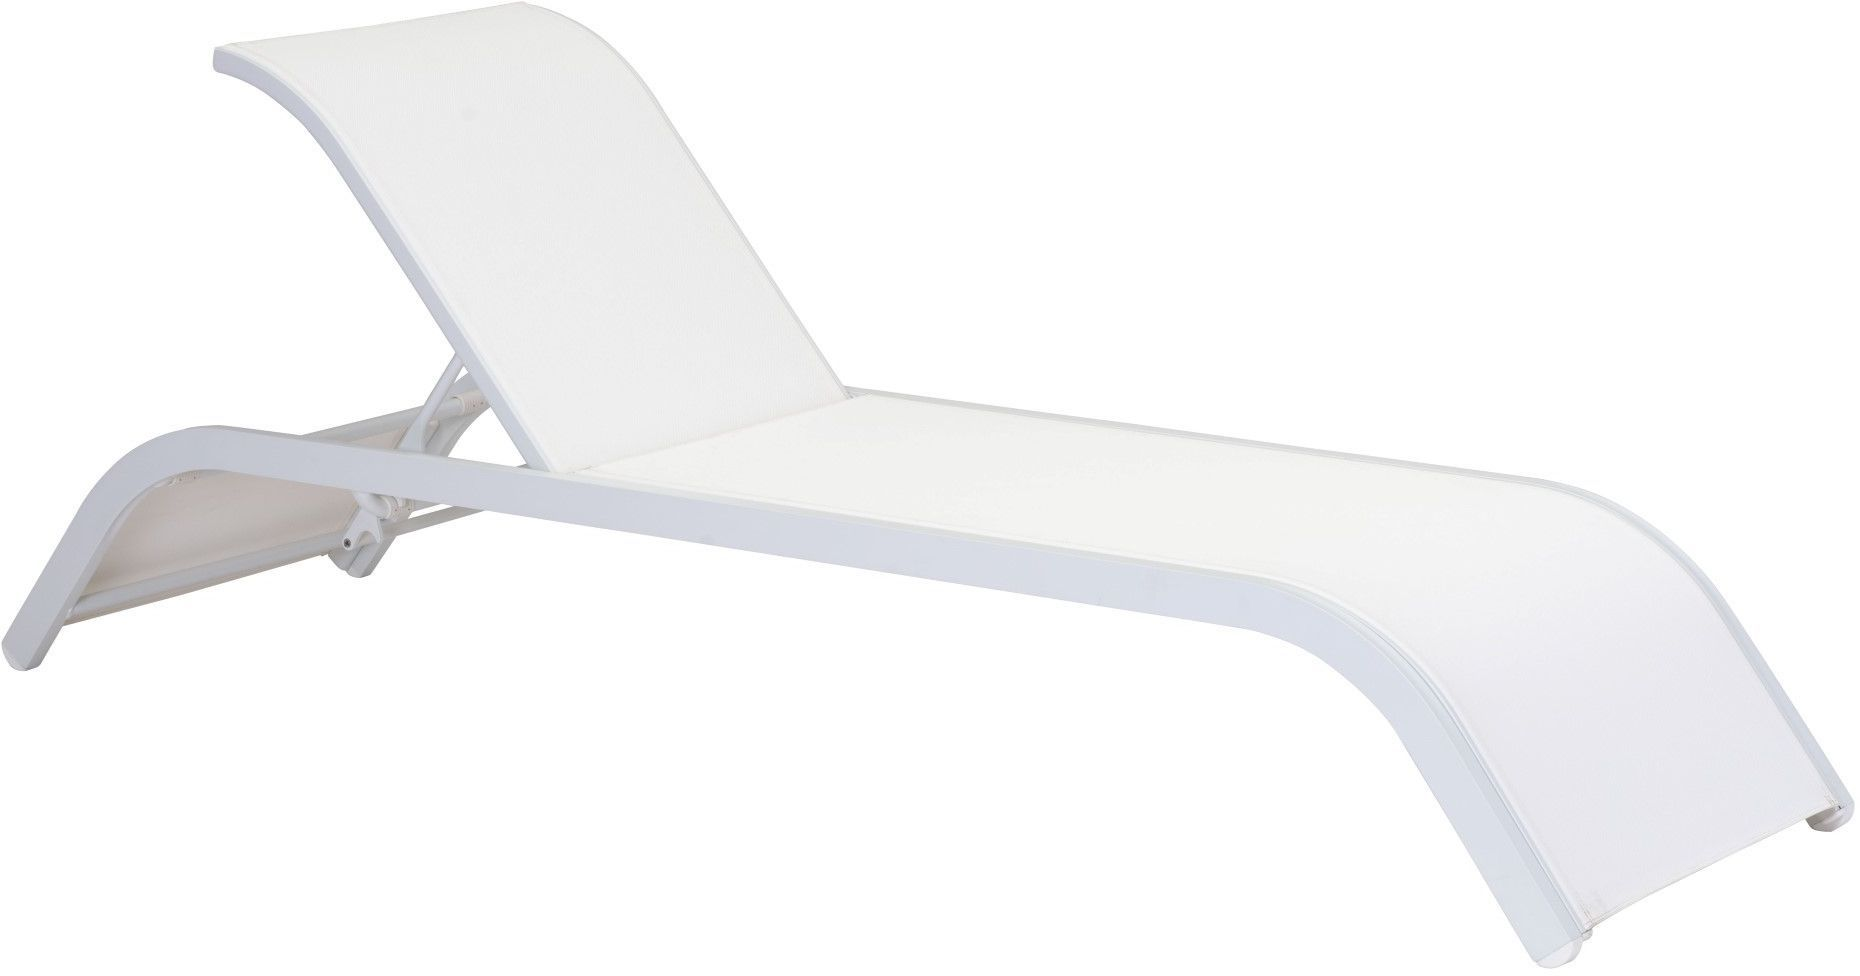 modern outdoor lounge chair canada steel spacers zuo vive sun beach chaise white 703586